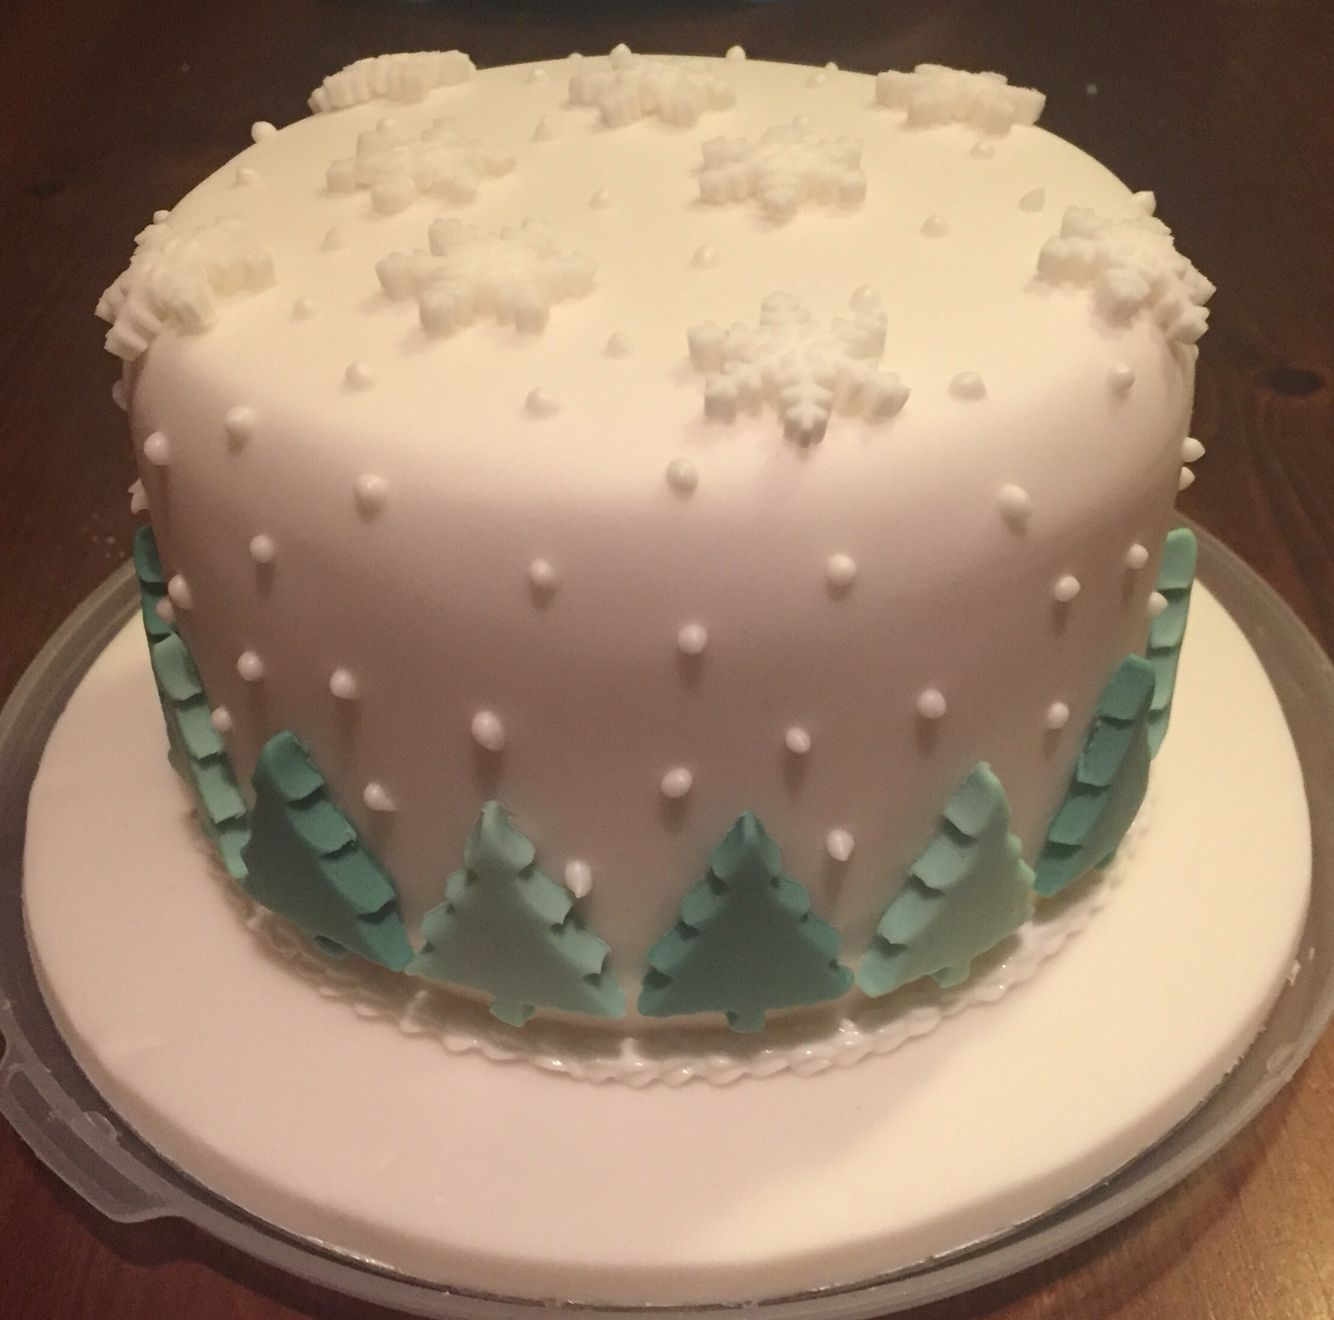 Christmas Cake with trees and snowflakes and royal icing